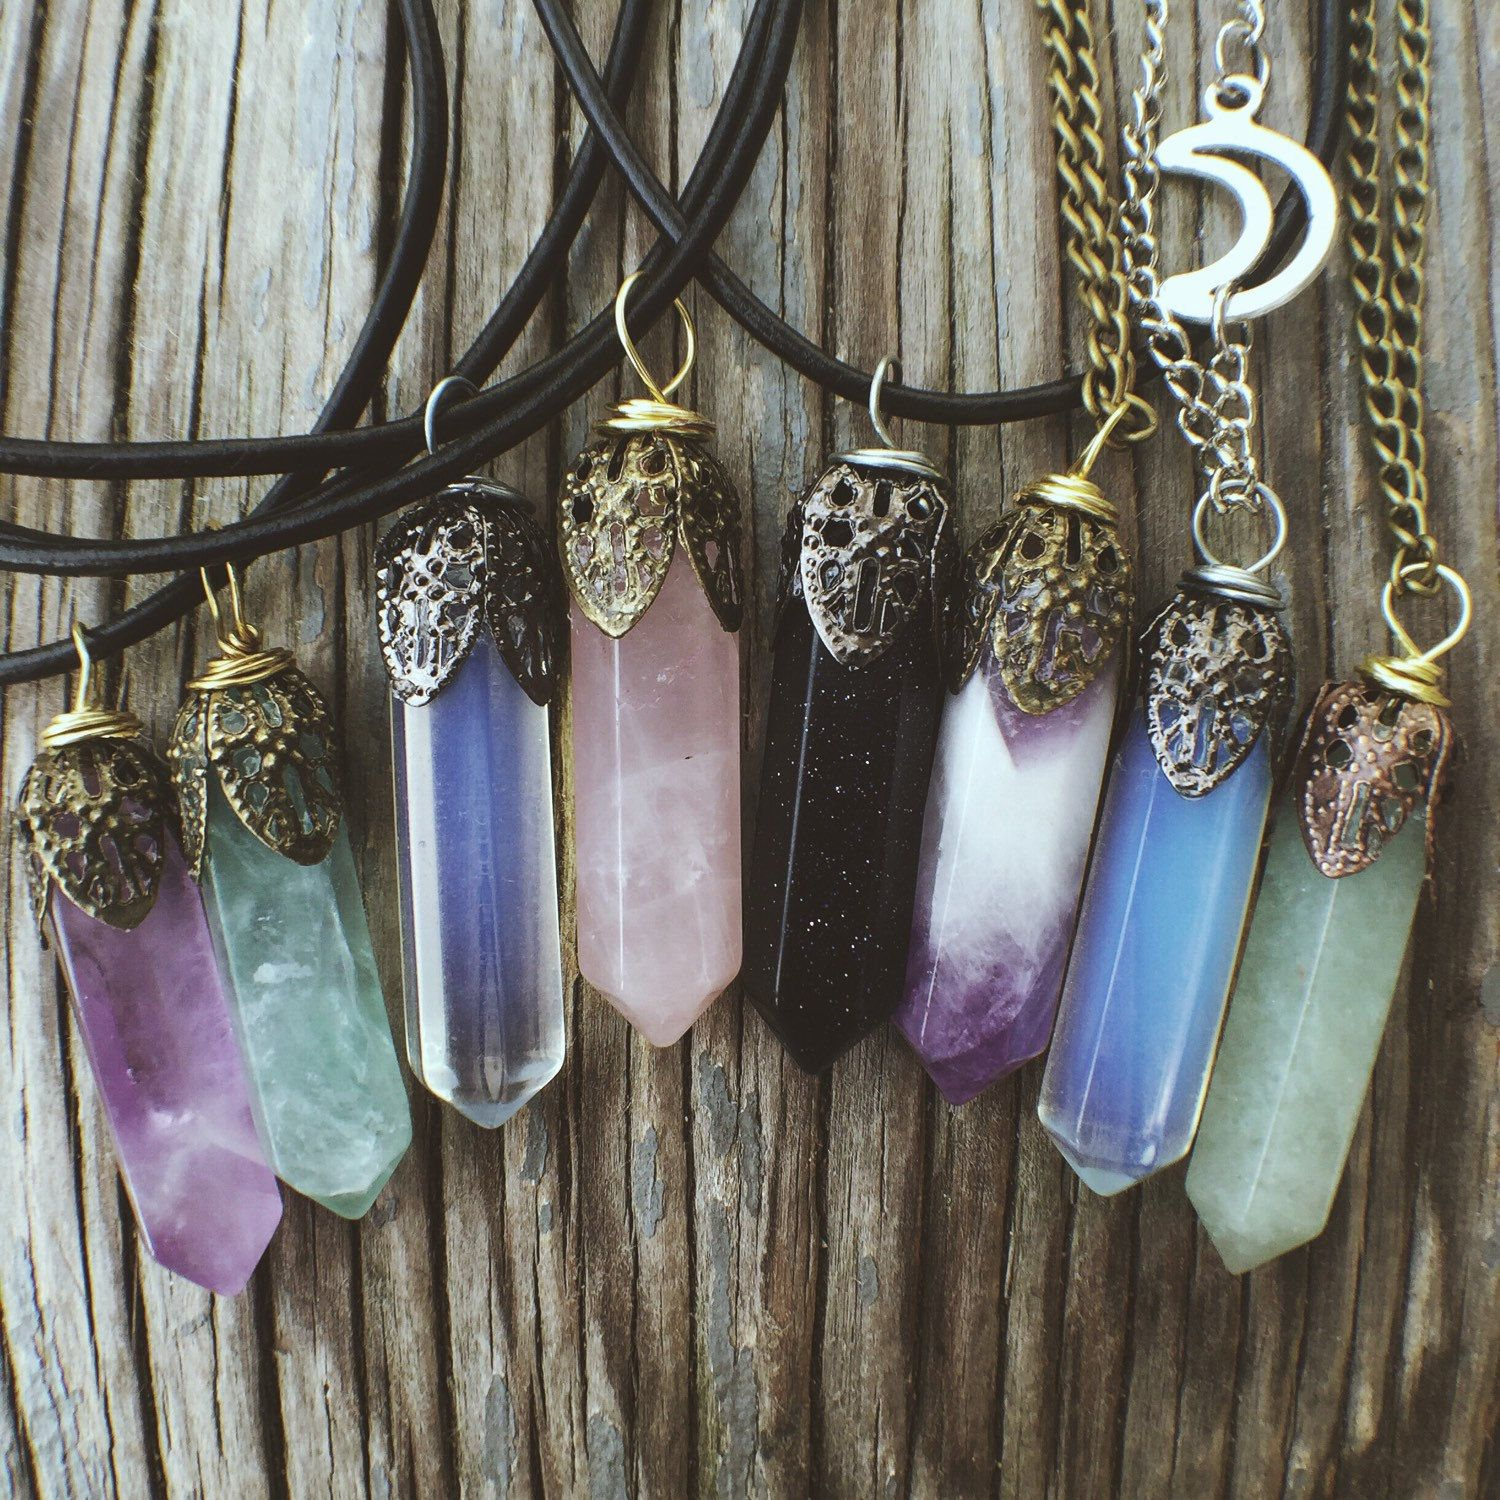 Stone pendant necklaces jewelry crystal rose quartz amethyst stone pendant necklaces jewelry crystal rose quartz amethyst opal fluorite reiki chakra boho bohemian hippie chokers blue one for me plz mozeypictures Image collections